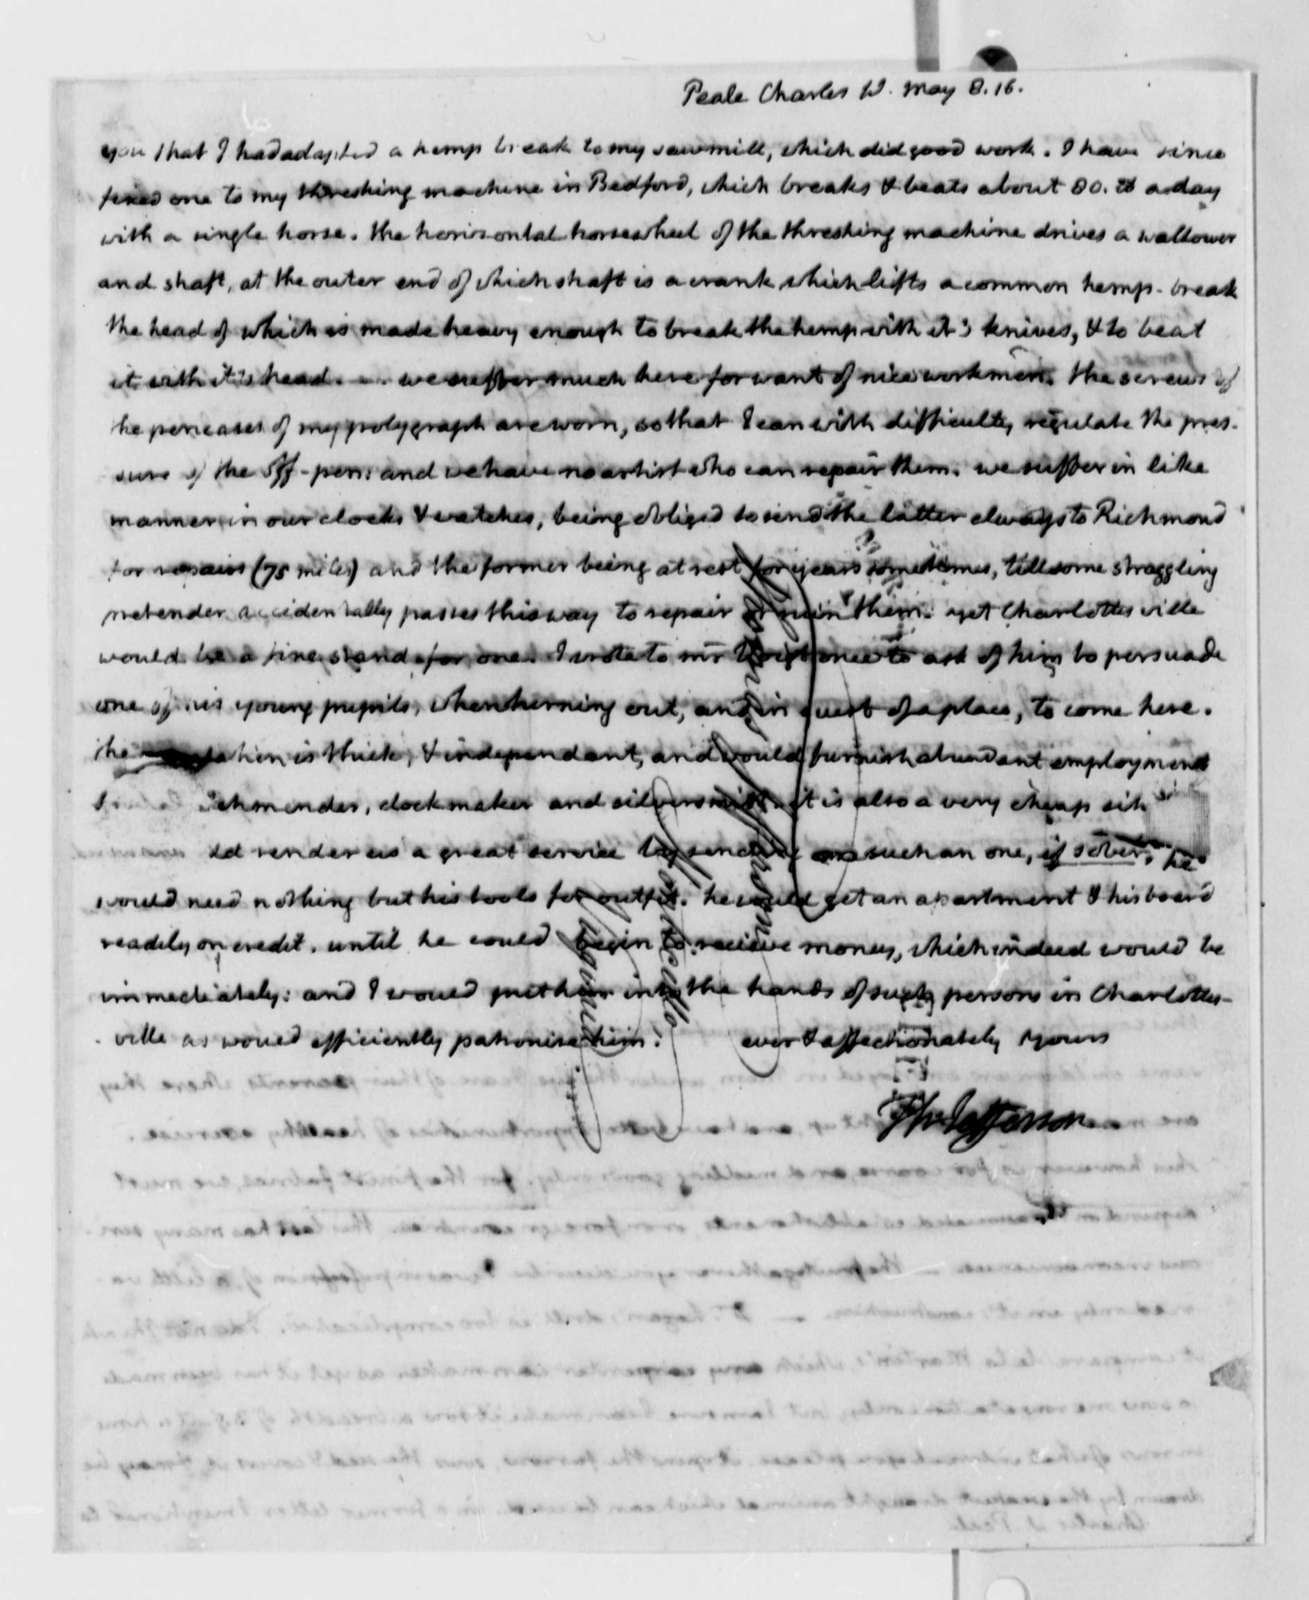 Thomas Jefferson to Charles Willson Peale, May 8, 1816